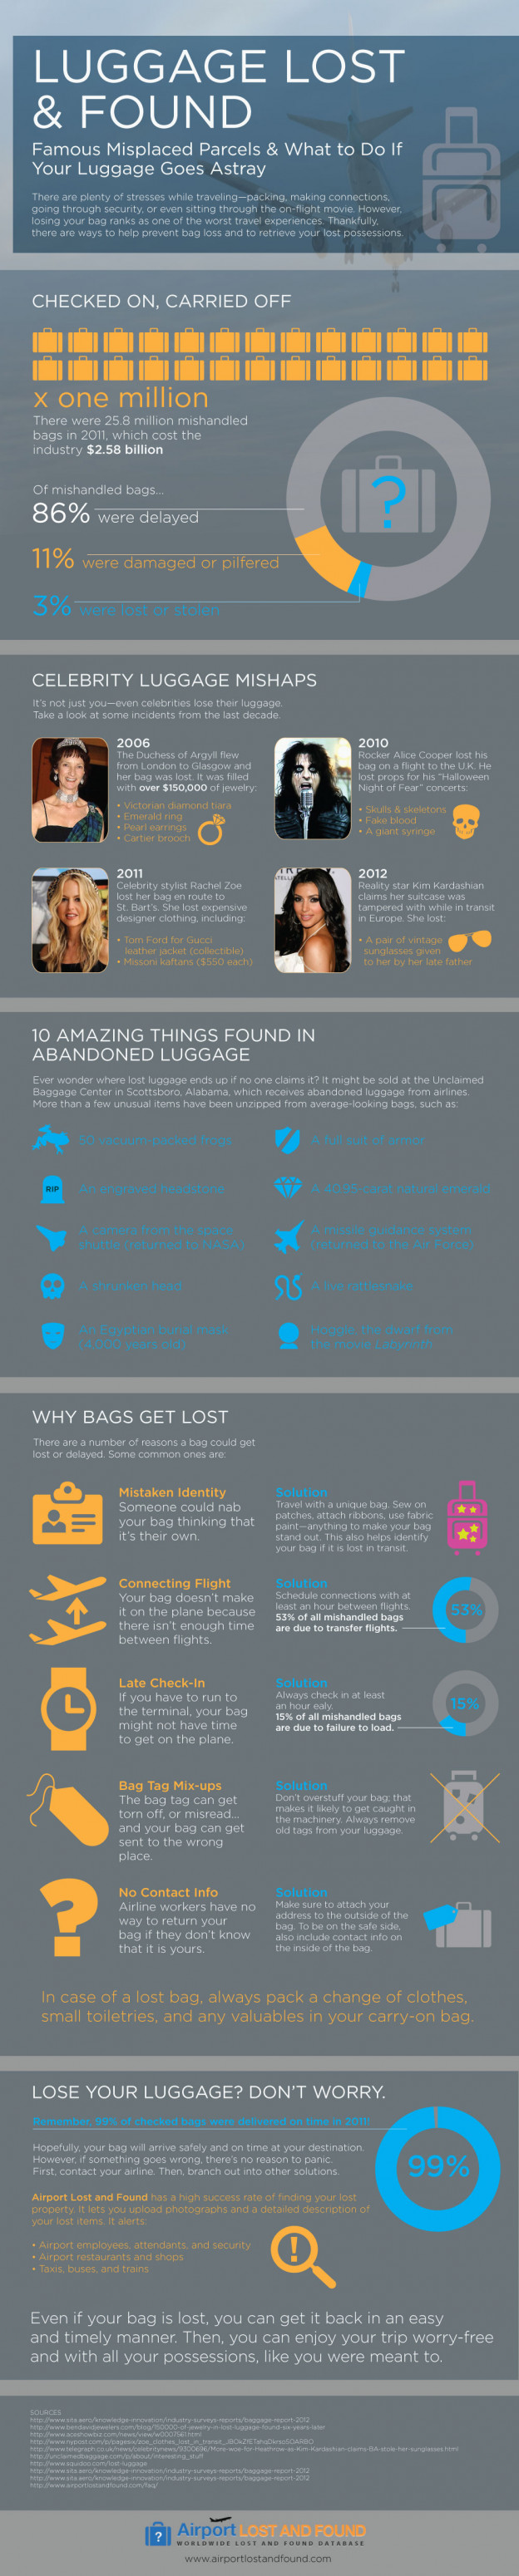 How to Get Your Lost Luggage and Unclaimed Baggage Back